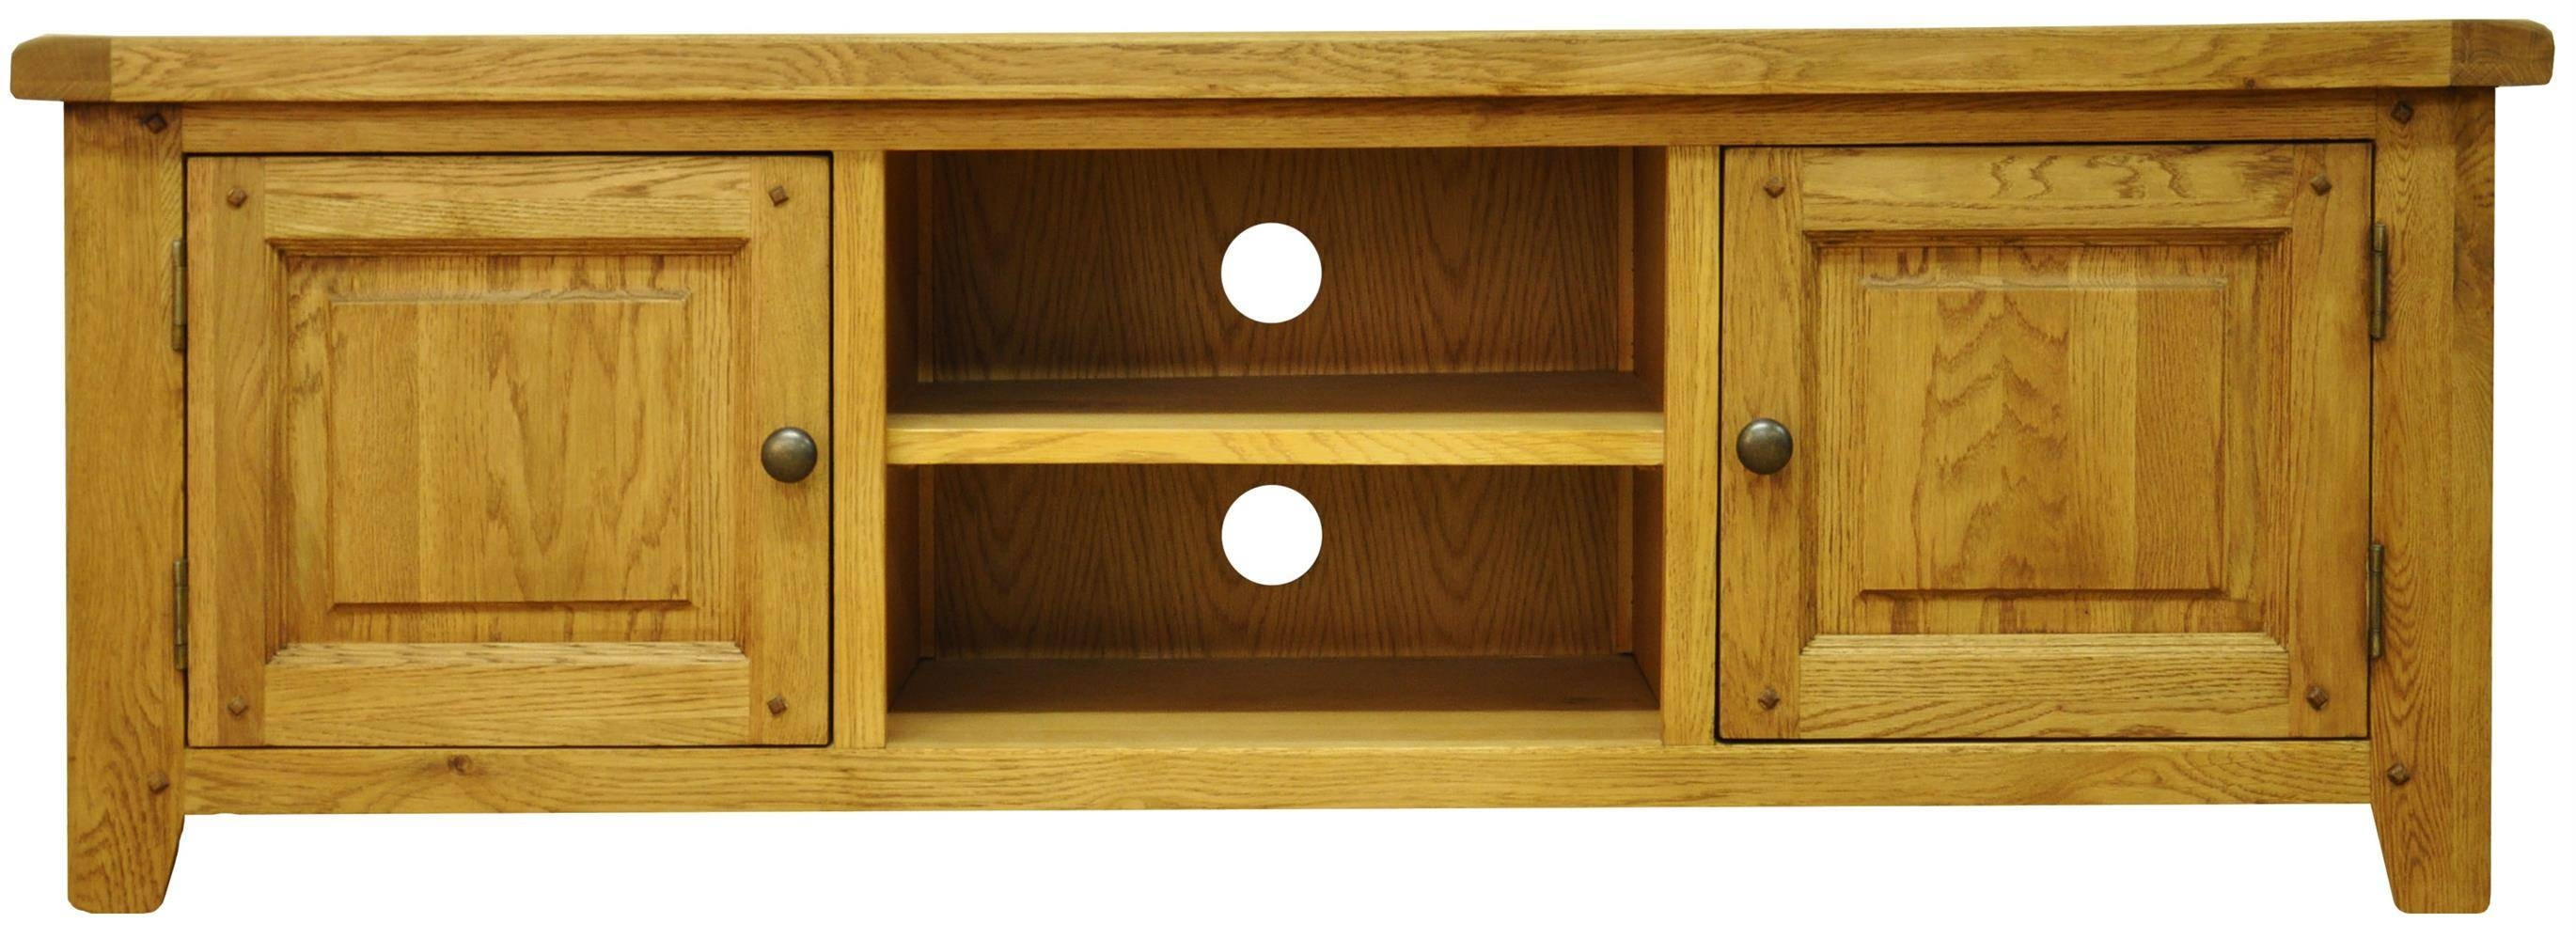 Tv Cabinets : Stanton Large Tv Unitstanton Large Tv Unit pertaining to Oak Tv Cabinets With Doors (Image 14 of 15)